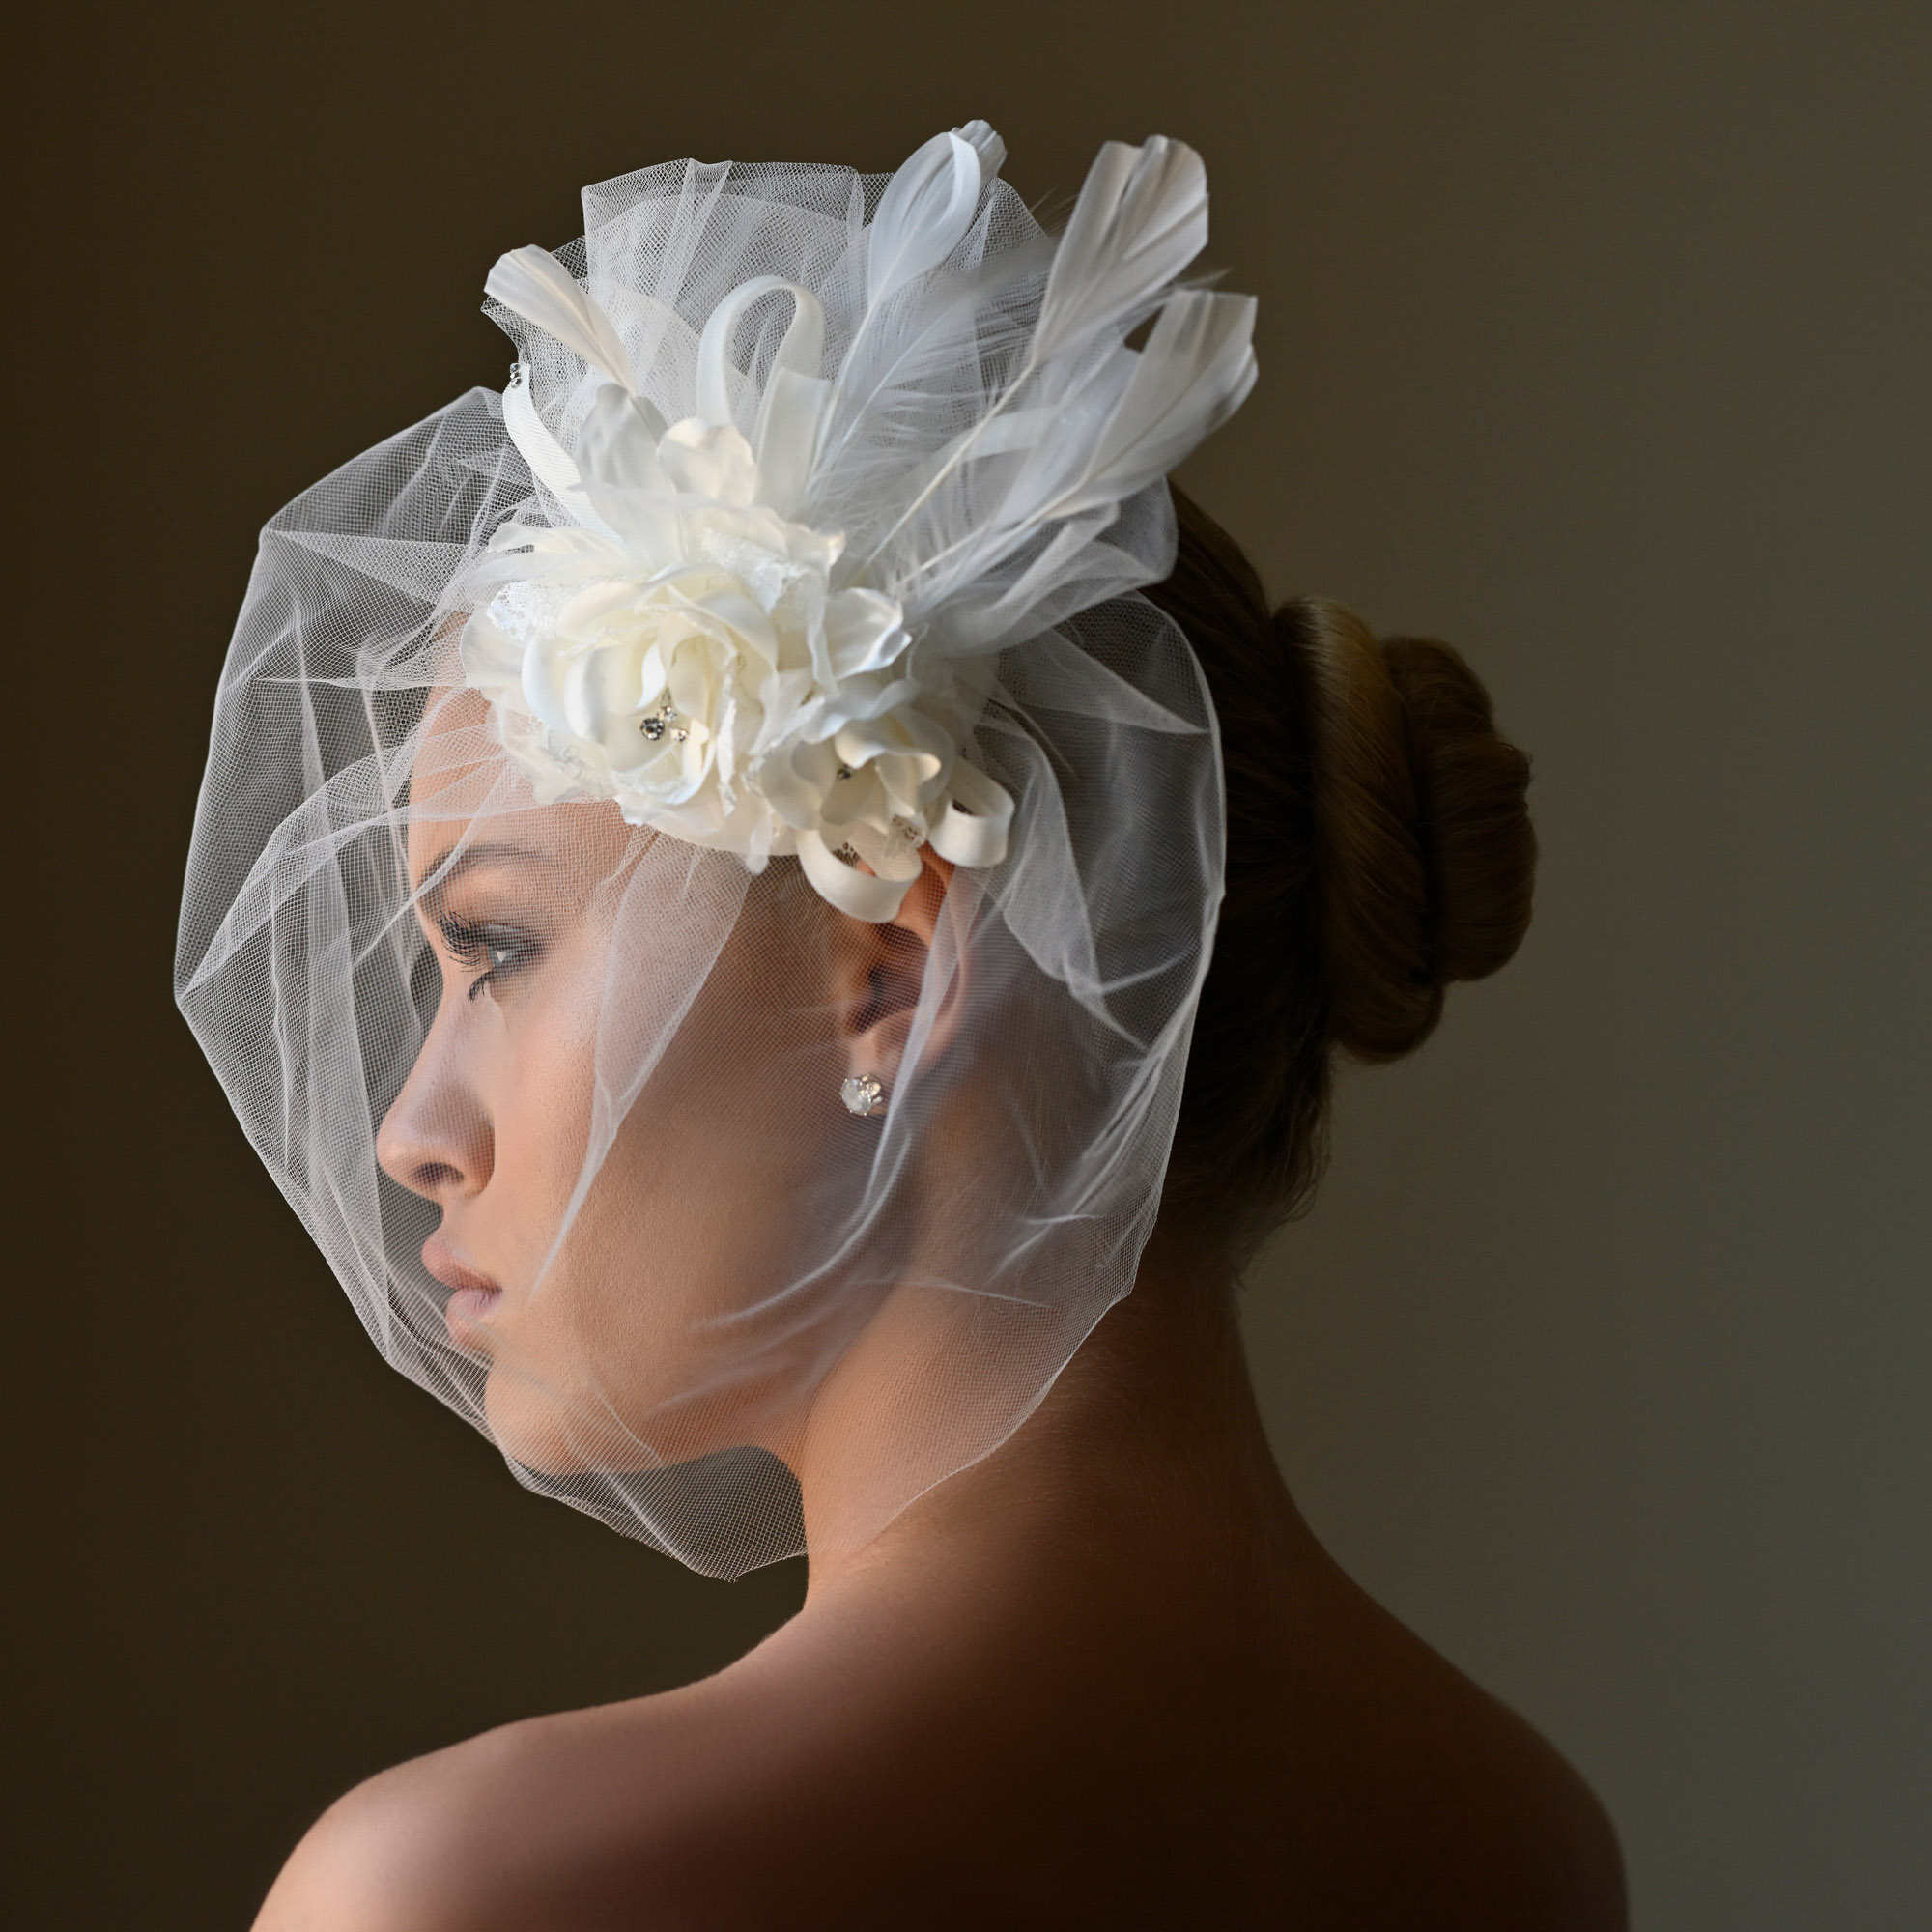 Bride wearing birdcage veil with ribbon bows - photo by Jerry Ghionis - Las Vegas